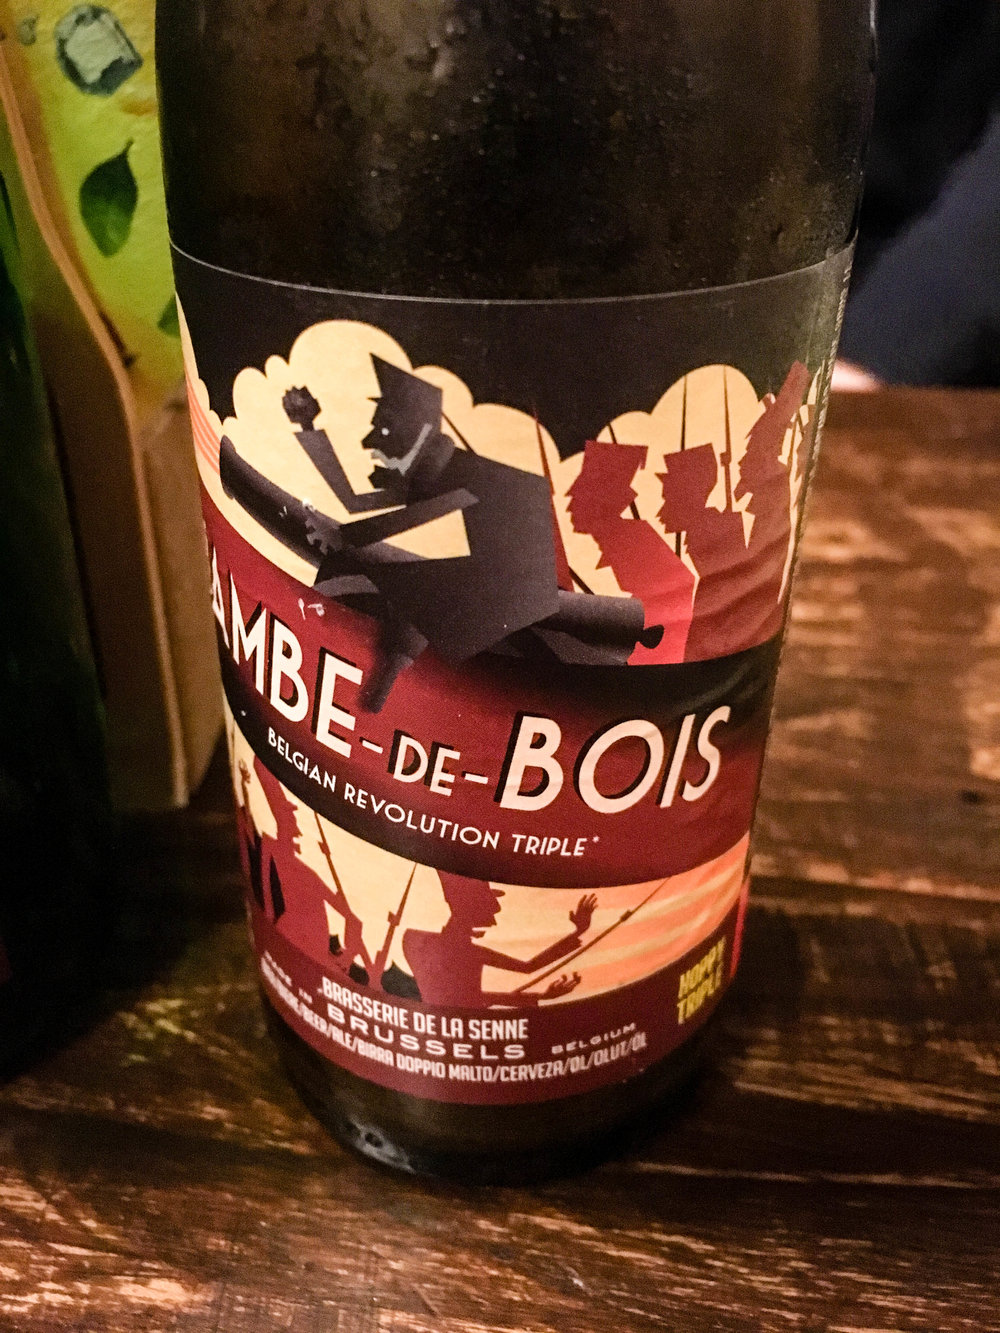 Jambe-de-bois, a Belgian beer tasted during our Brussels Beer and Chocolate Tour given by Brussels Journey